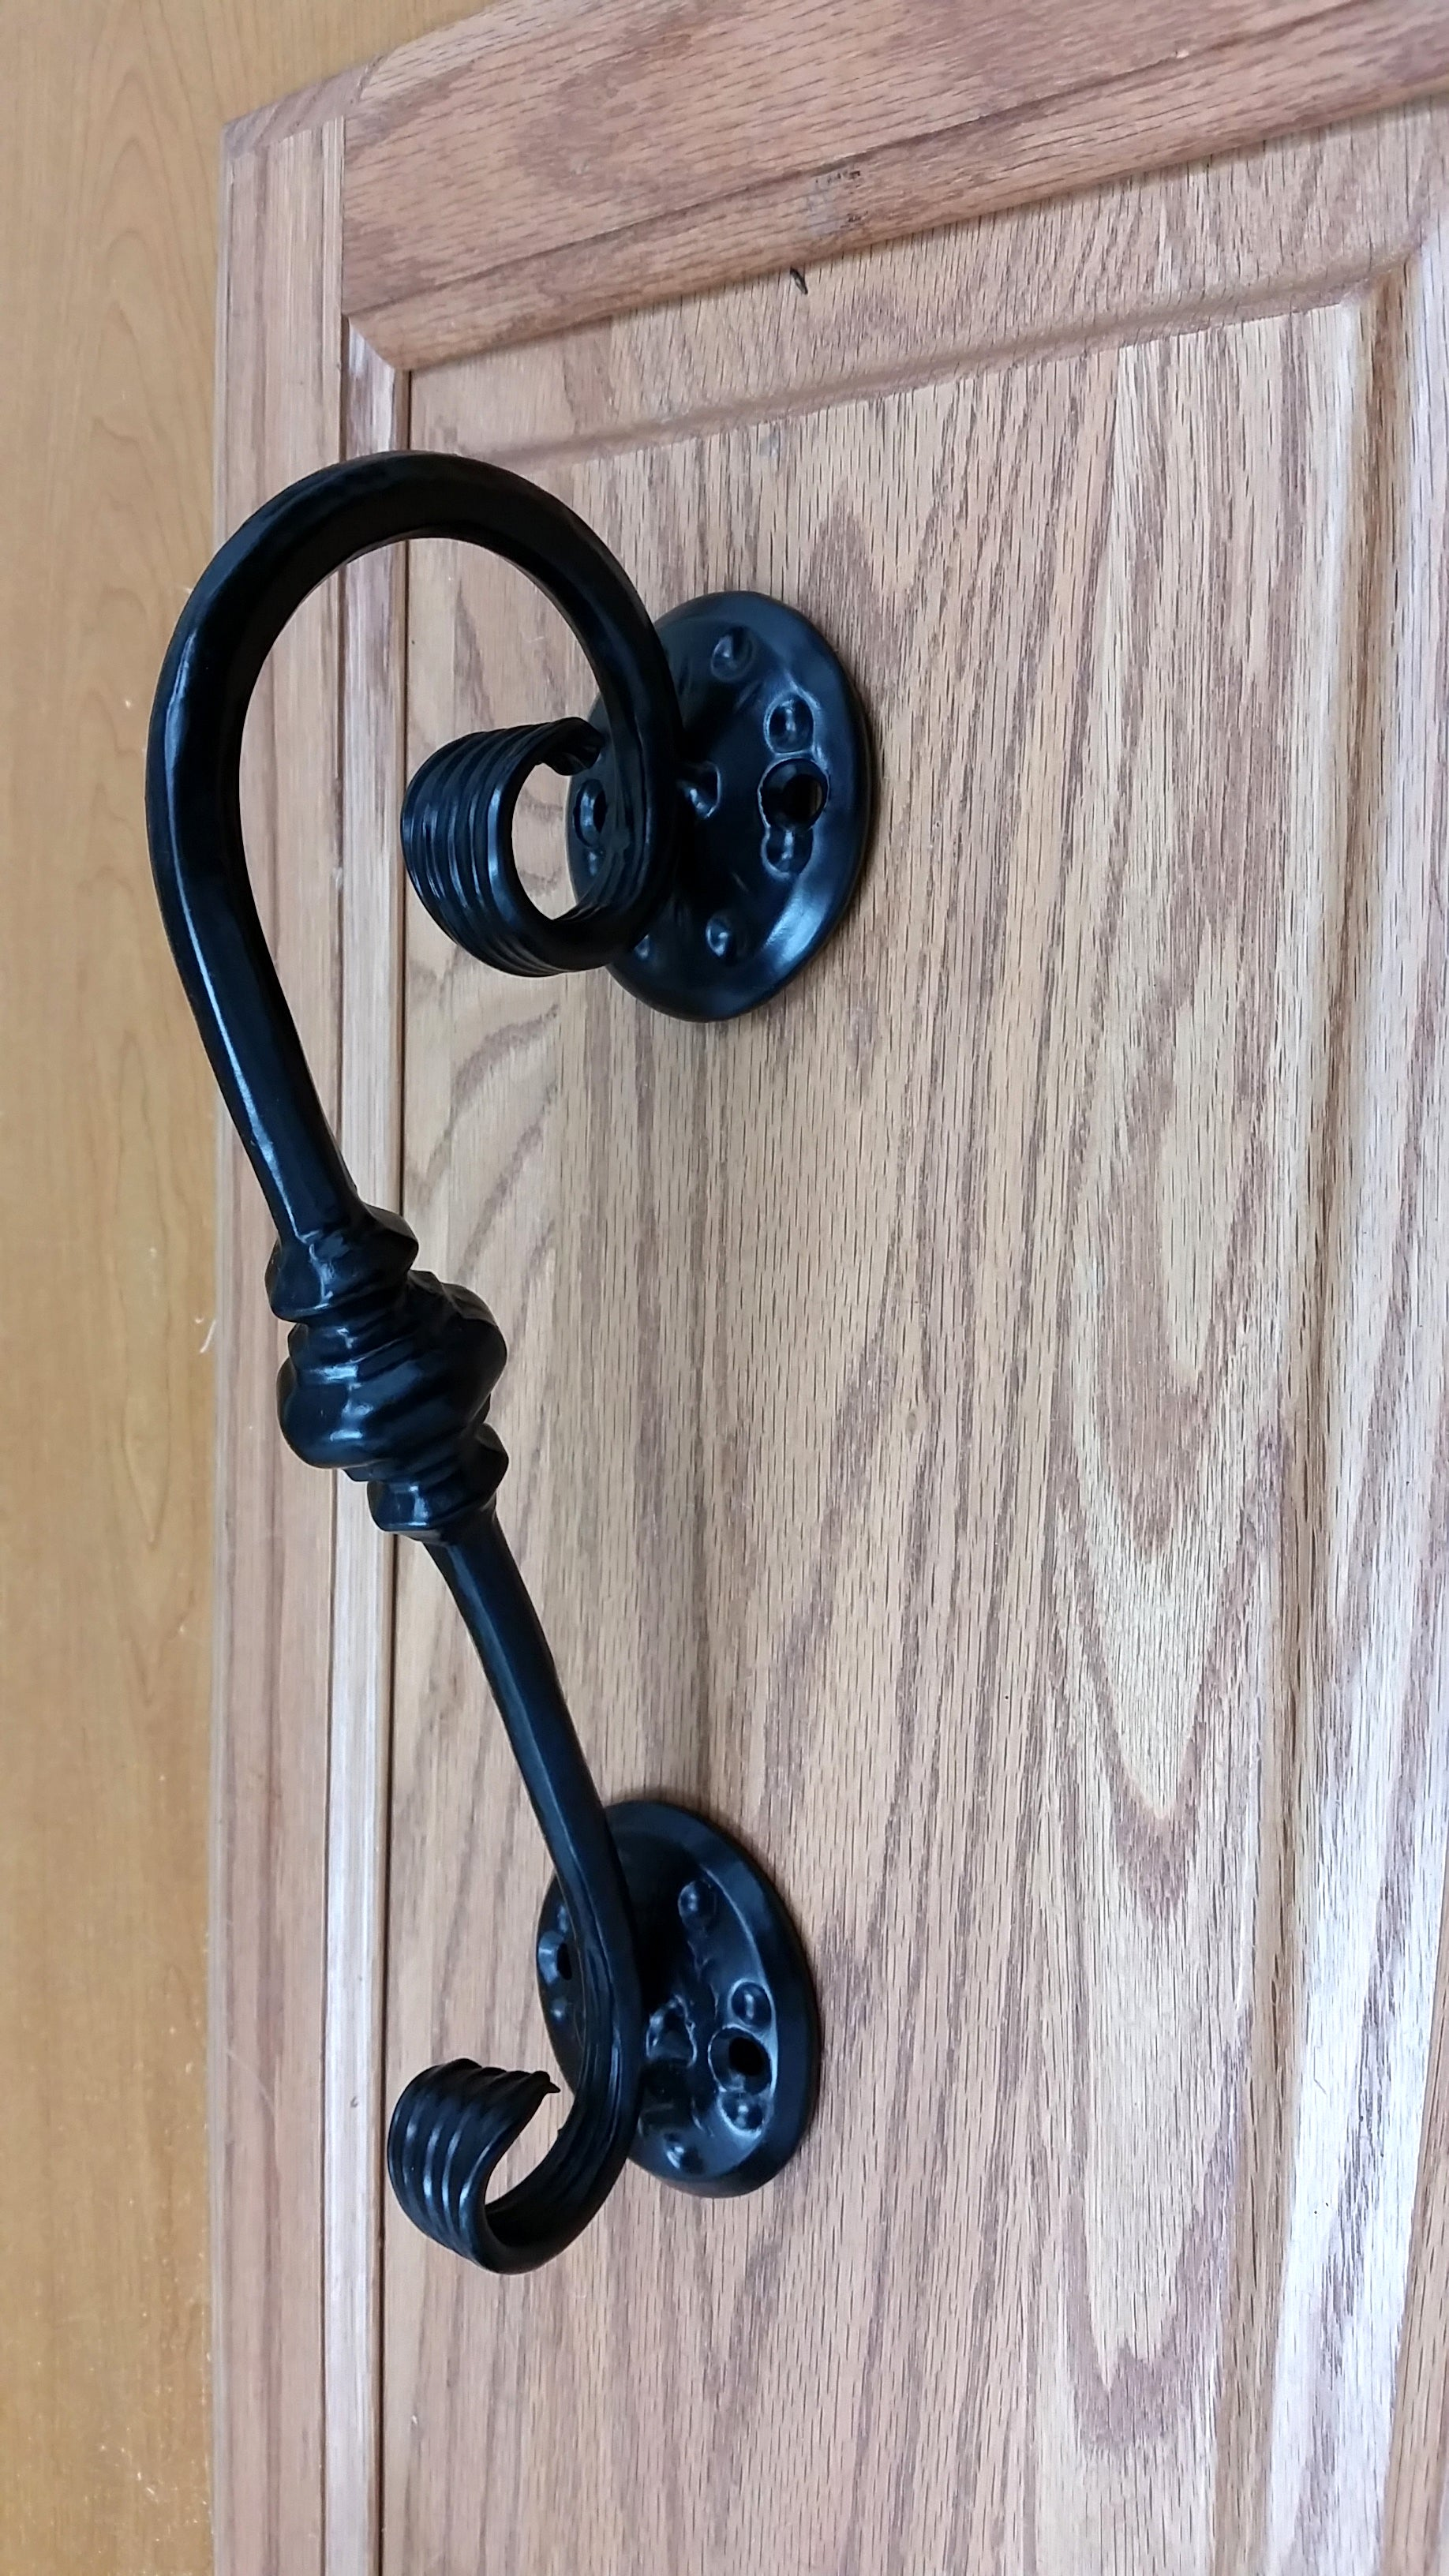 Scrolled Door Pull with decorative round base plates - Wild West Hardware